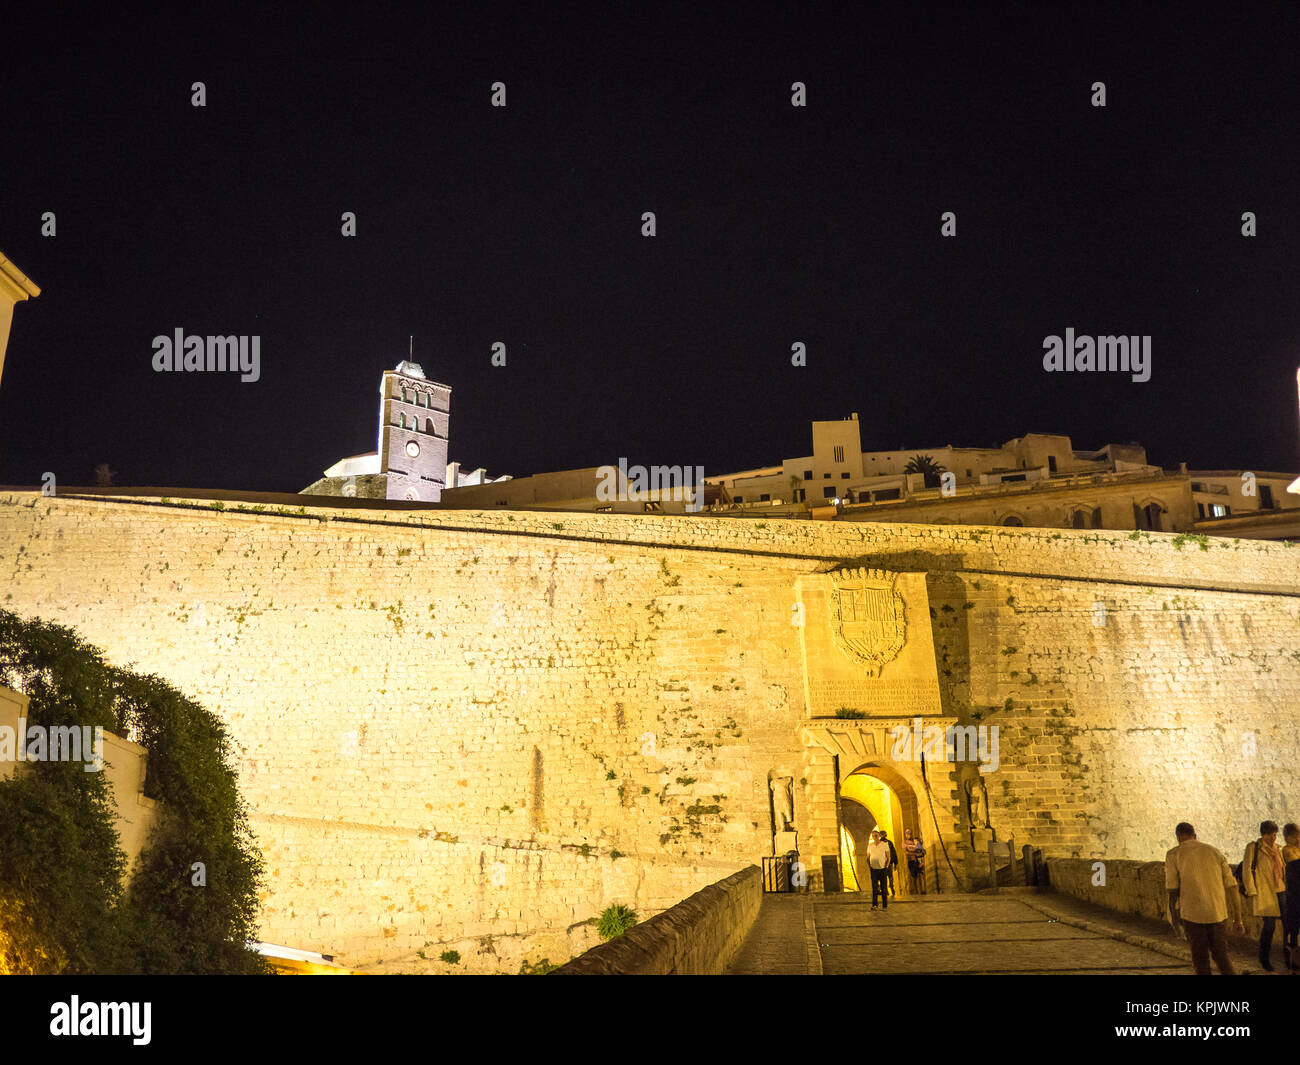 Ibiza, Spain - May 23, 2015. View of the entry ramp to the Ibiza old town fortress at night. Stock Photo